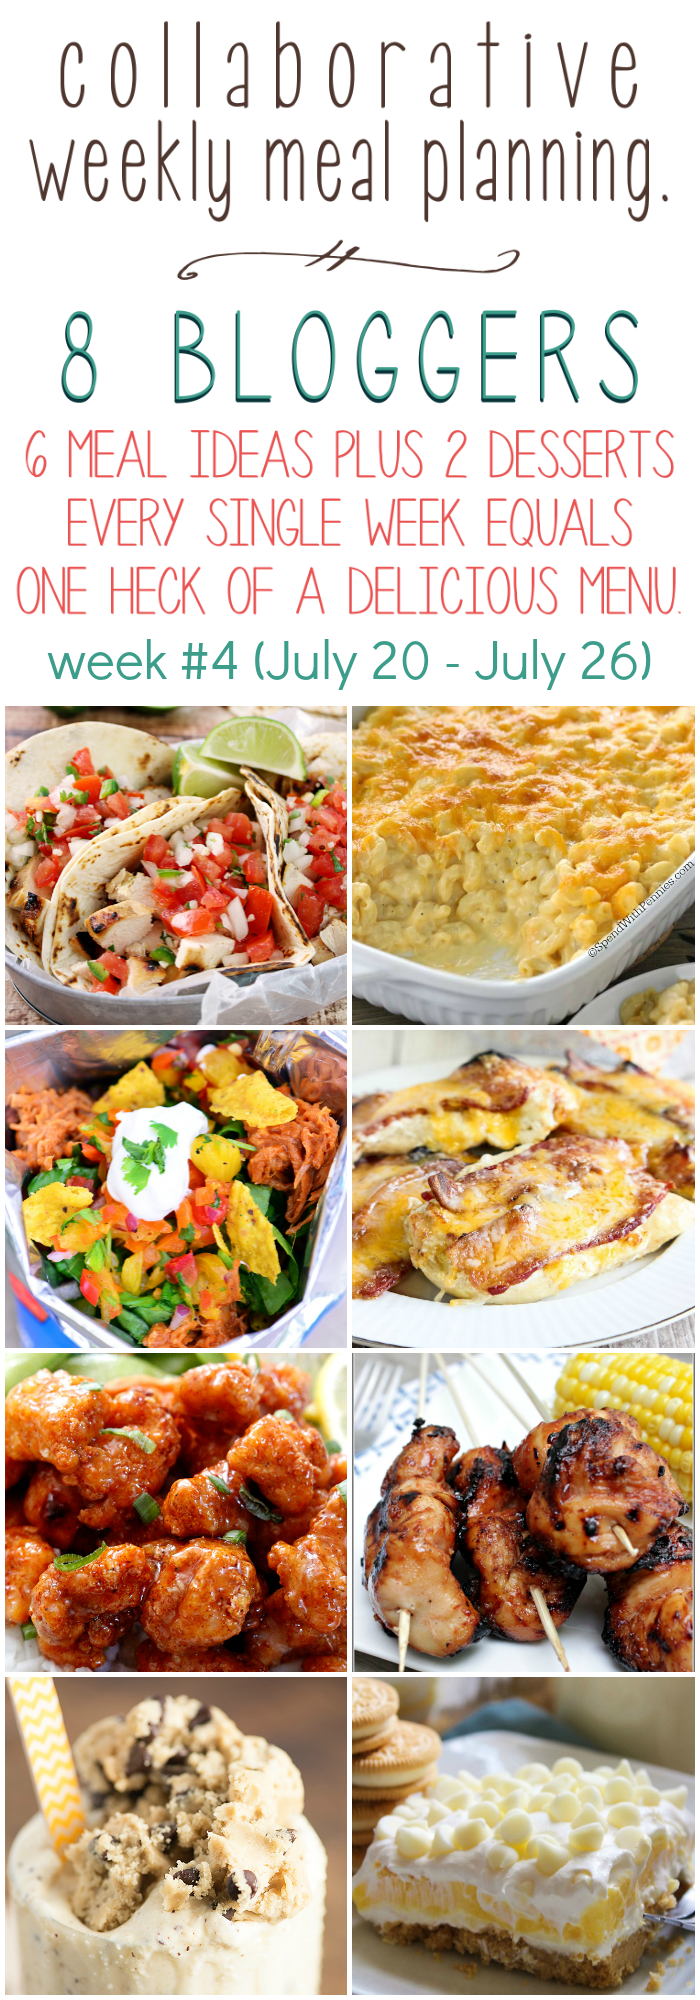 Collaborative weekly meal planning. 8 bloggers. 6 meal ideas plus 2 desserts every single week equals one heck of a delicious menu - week 4